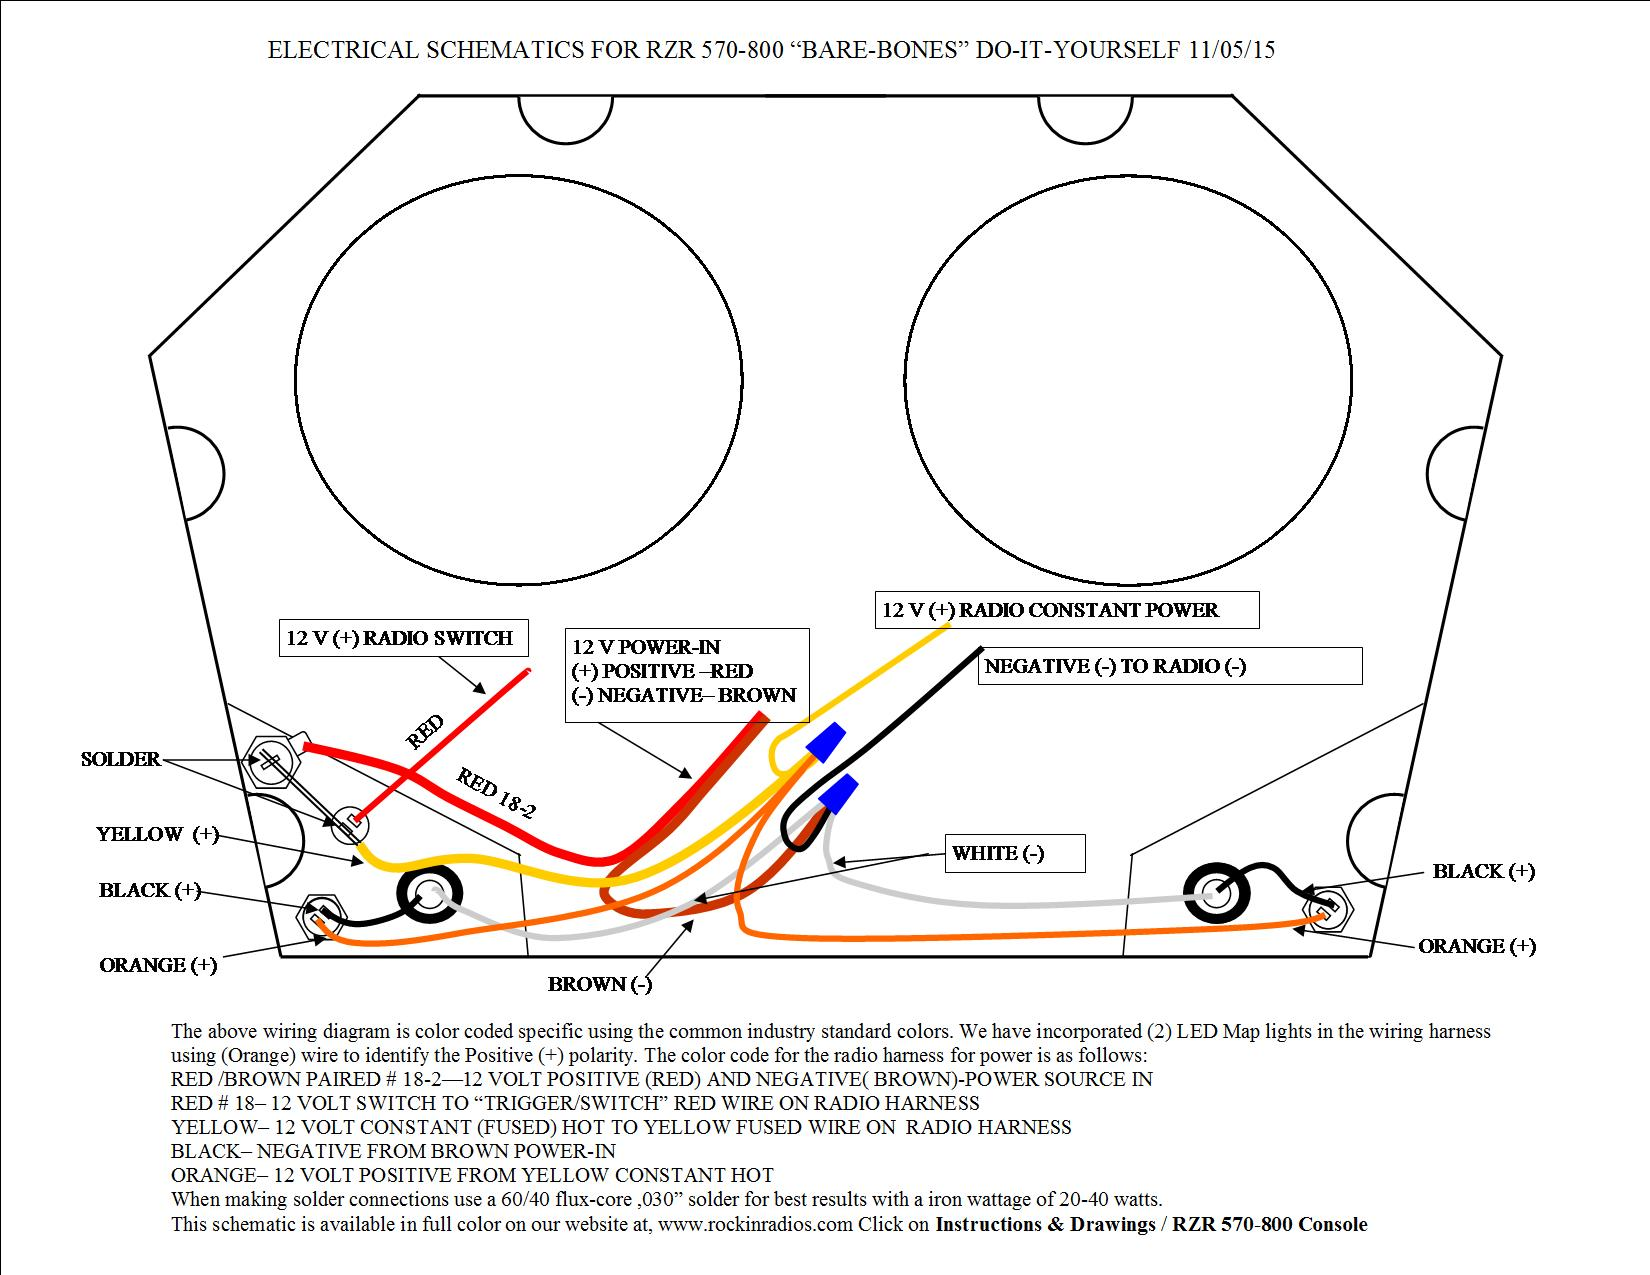 hight resolution of rzr wiring schematic wiring diagram insiderzr wiring schematic wiring diagram 2008 rzr wiring schematic rzr 570